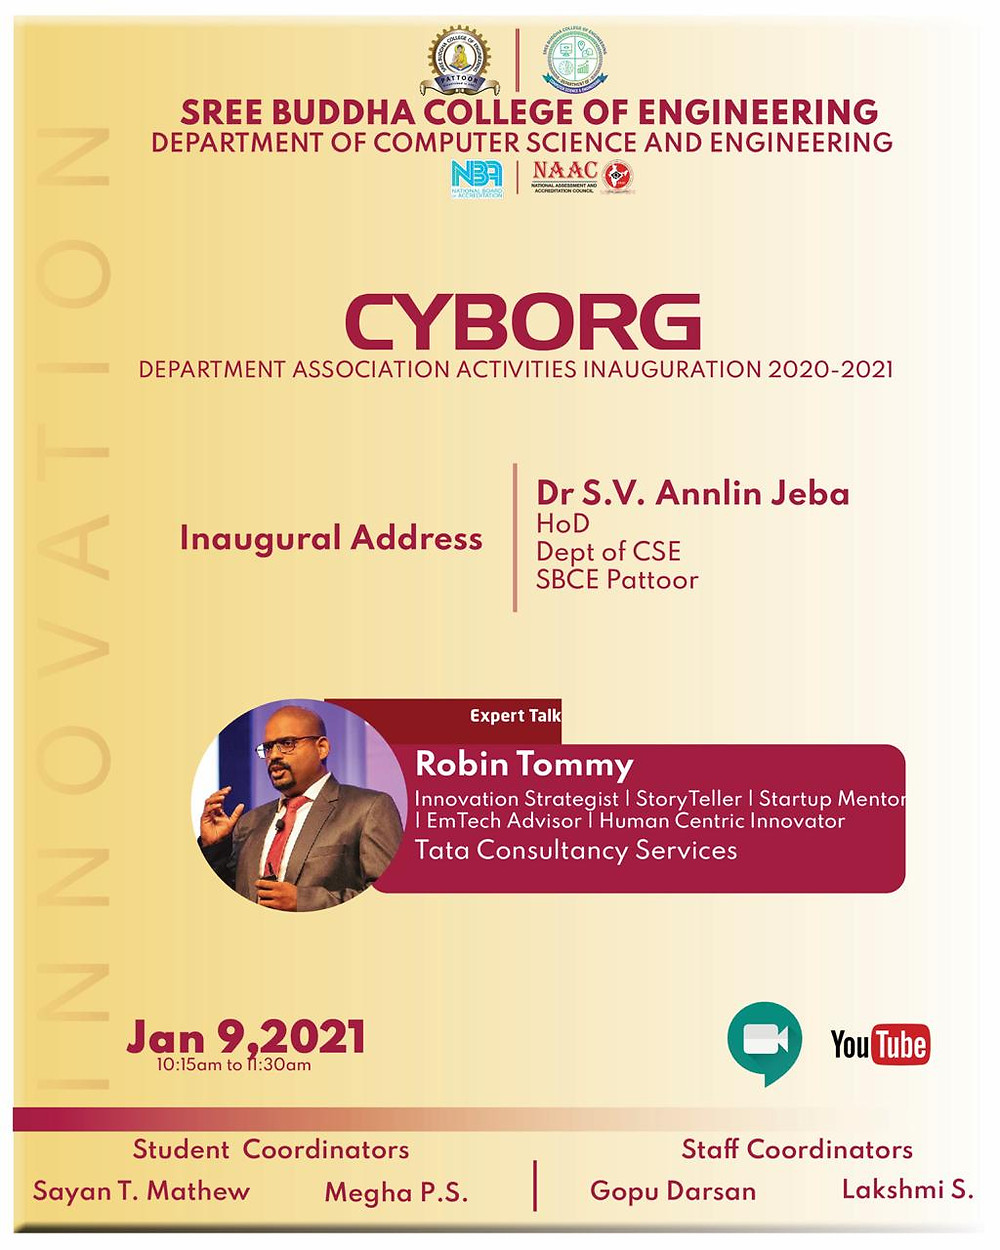 Talk by Robin Tommy at Cyborg - Sree Budha College of Engineering